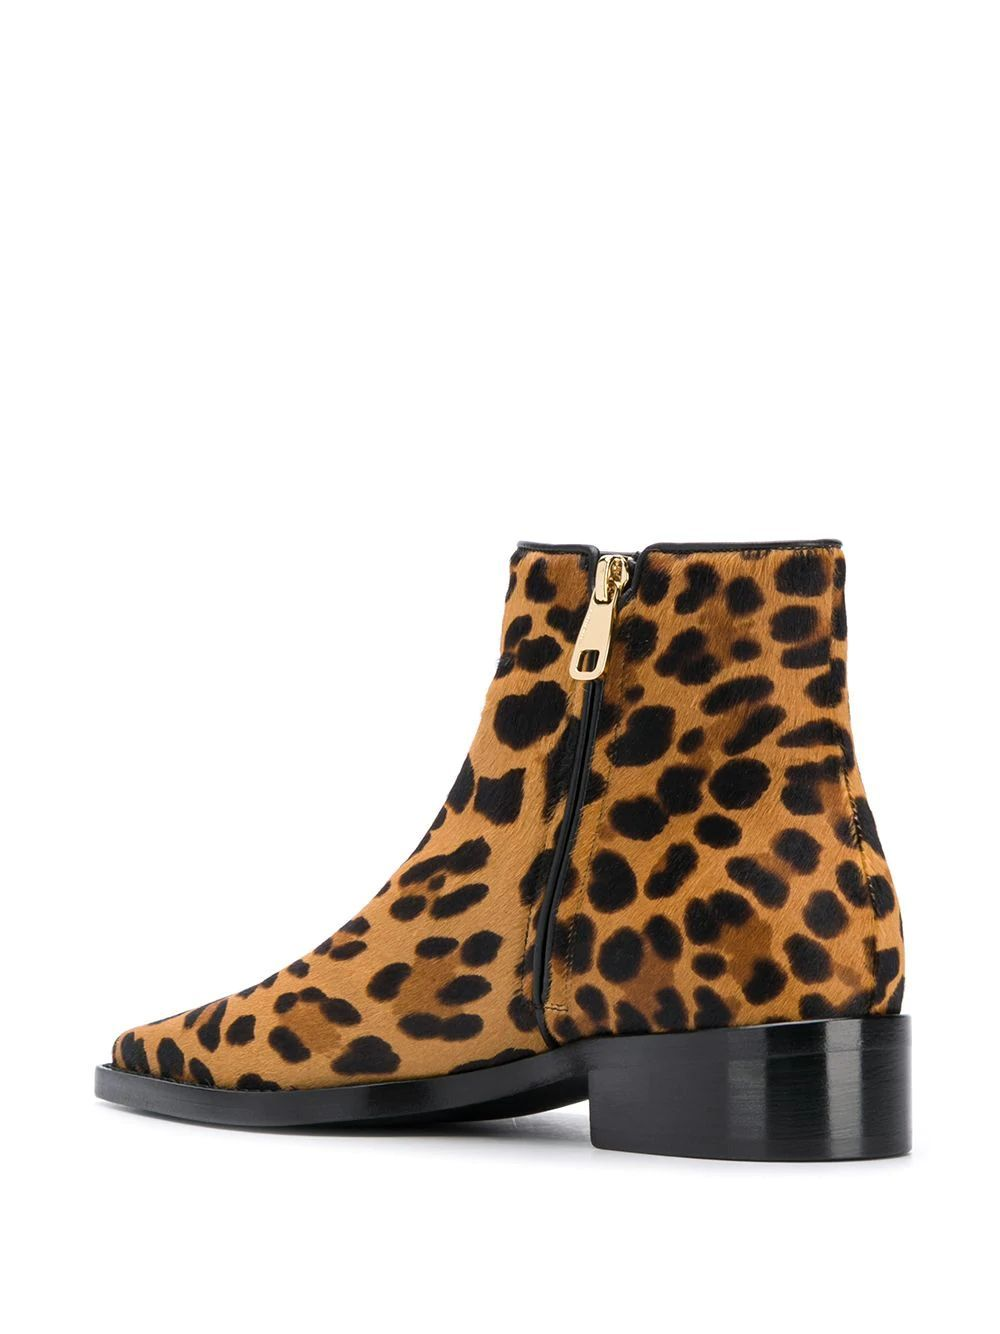 DOLCE E GABBANA WOMEN'S CT0583AI533HAALM BROWN LEATHER ANKLE BOOTS